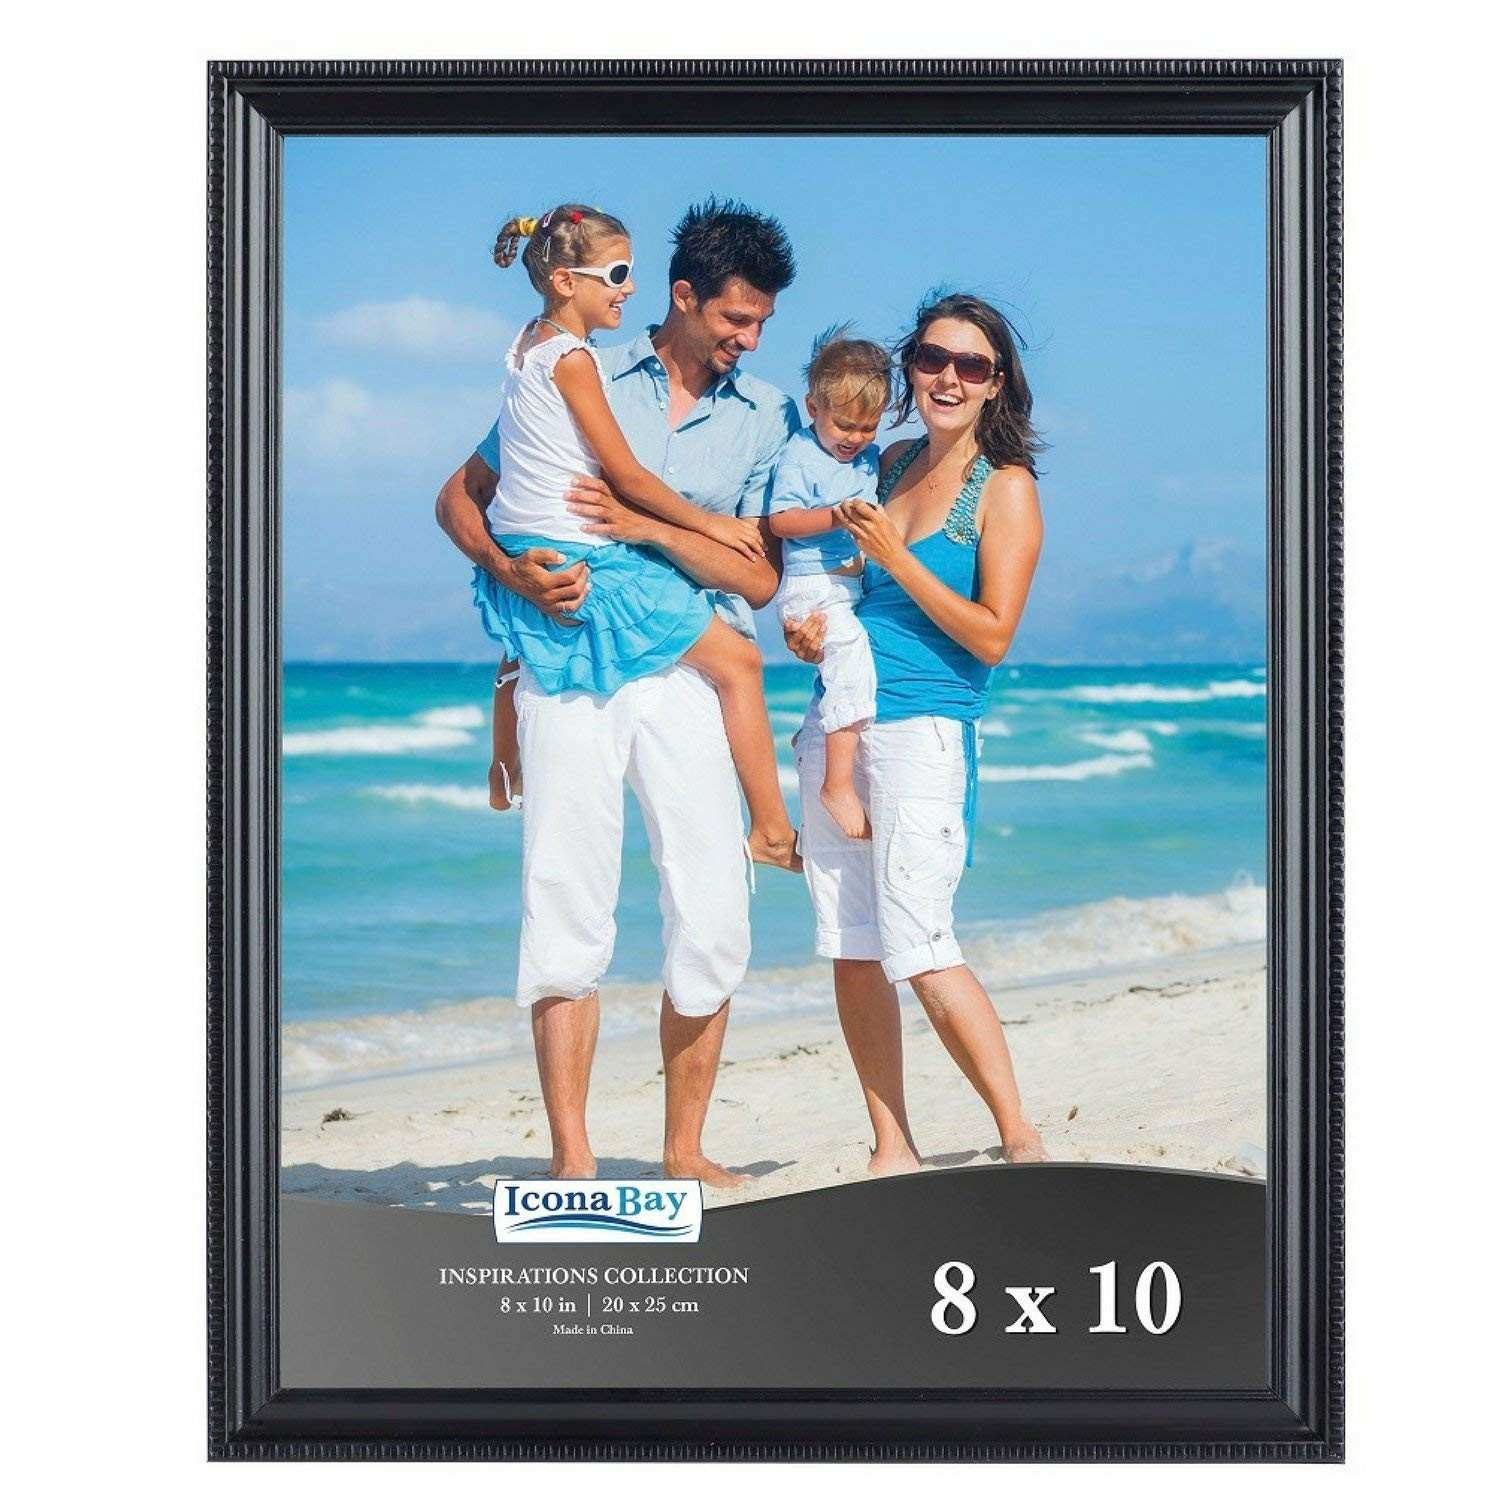 Acrylic Picture Frames Wall Mount Awesome Amazon Icona Bay Black